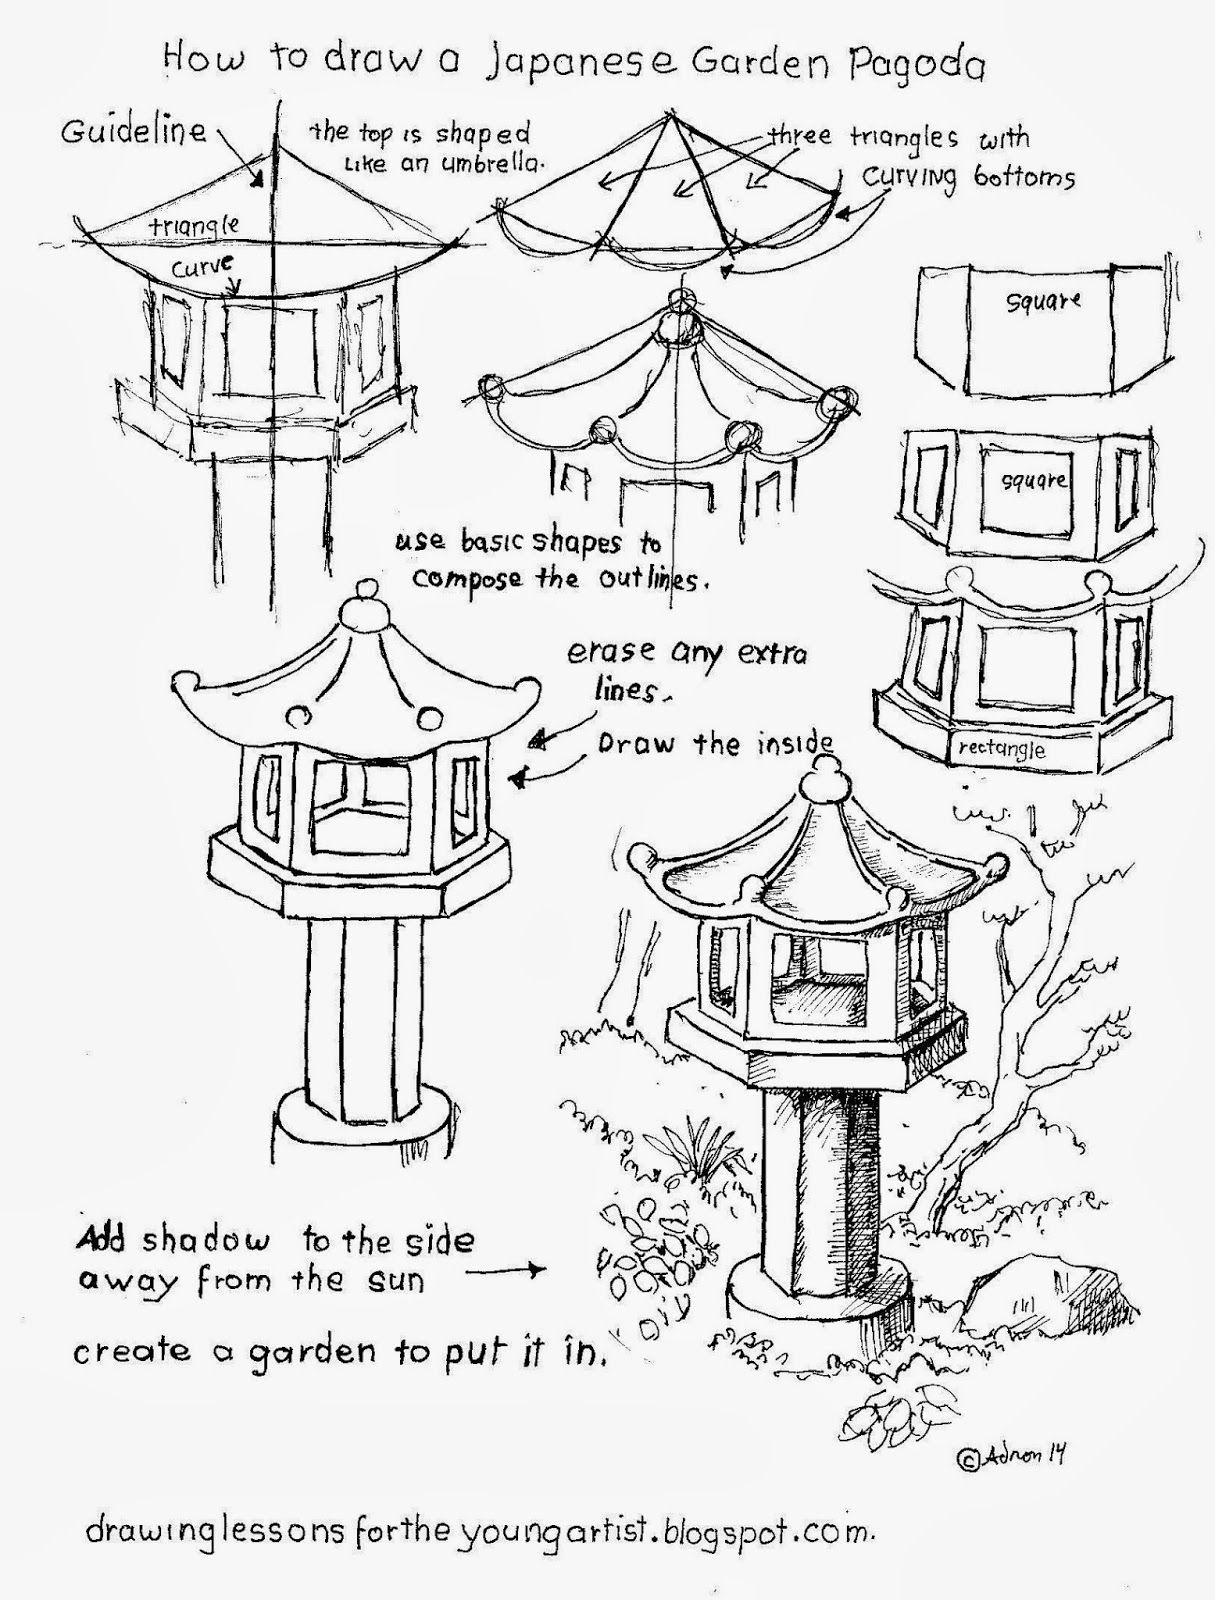 How To Draw A Garden Pagoda Worksheet See More At My Blogger Drawinglessonsfortheyoungartistblogspot